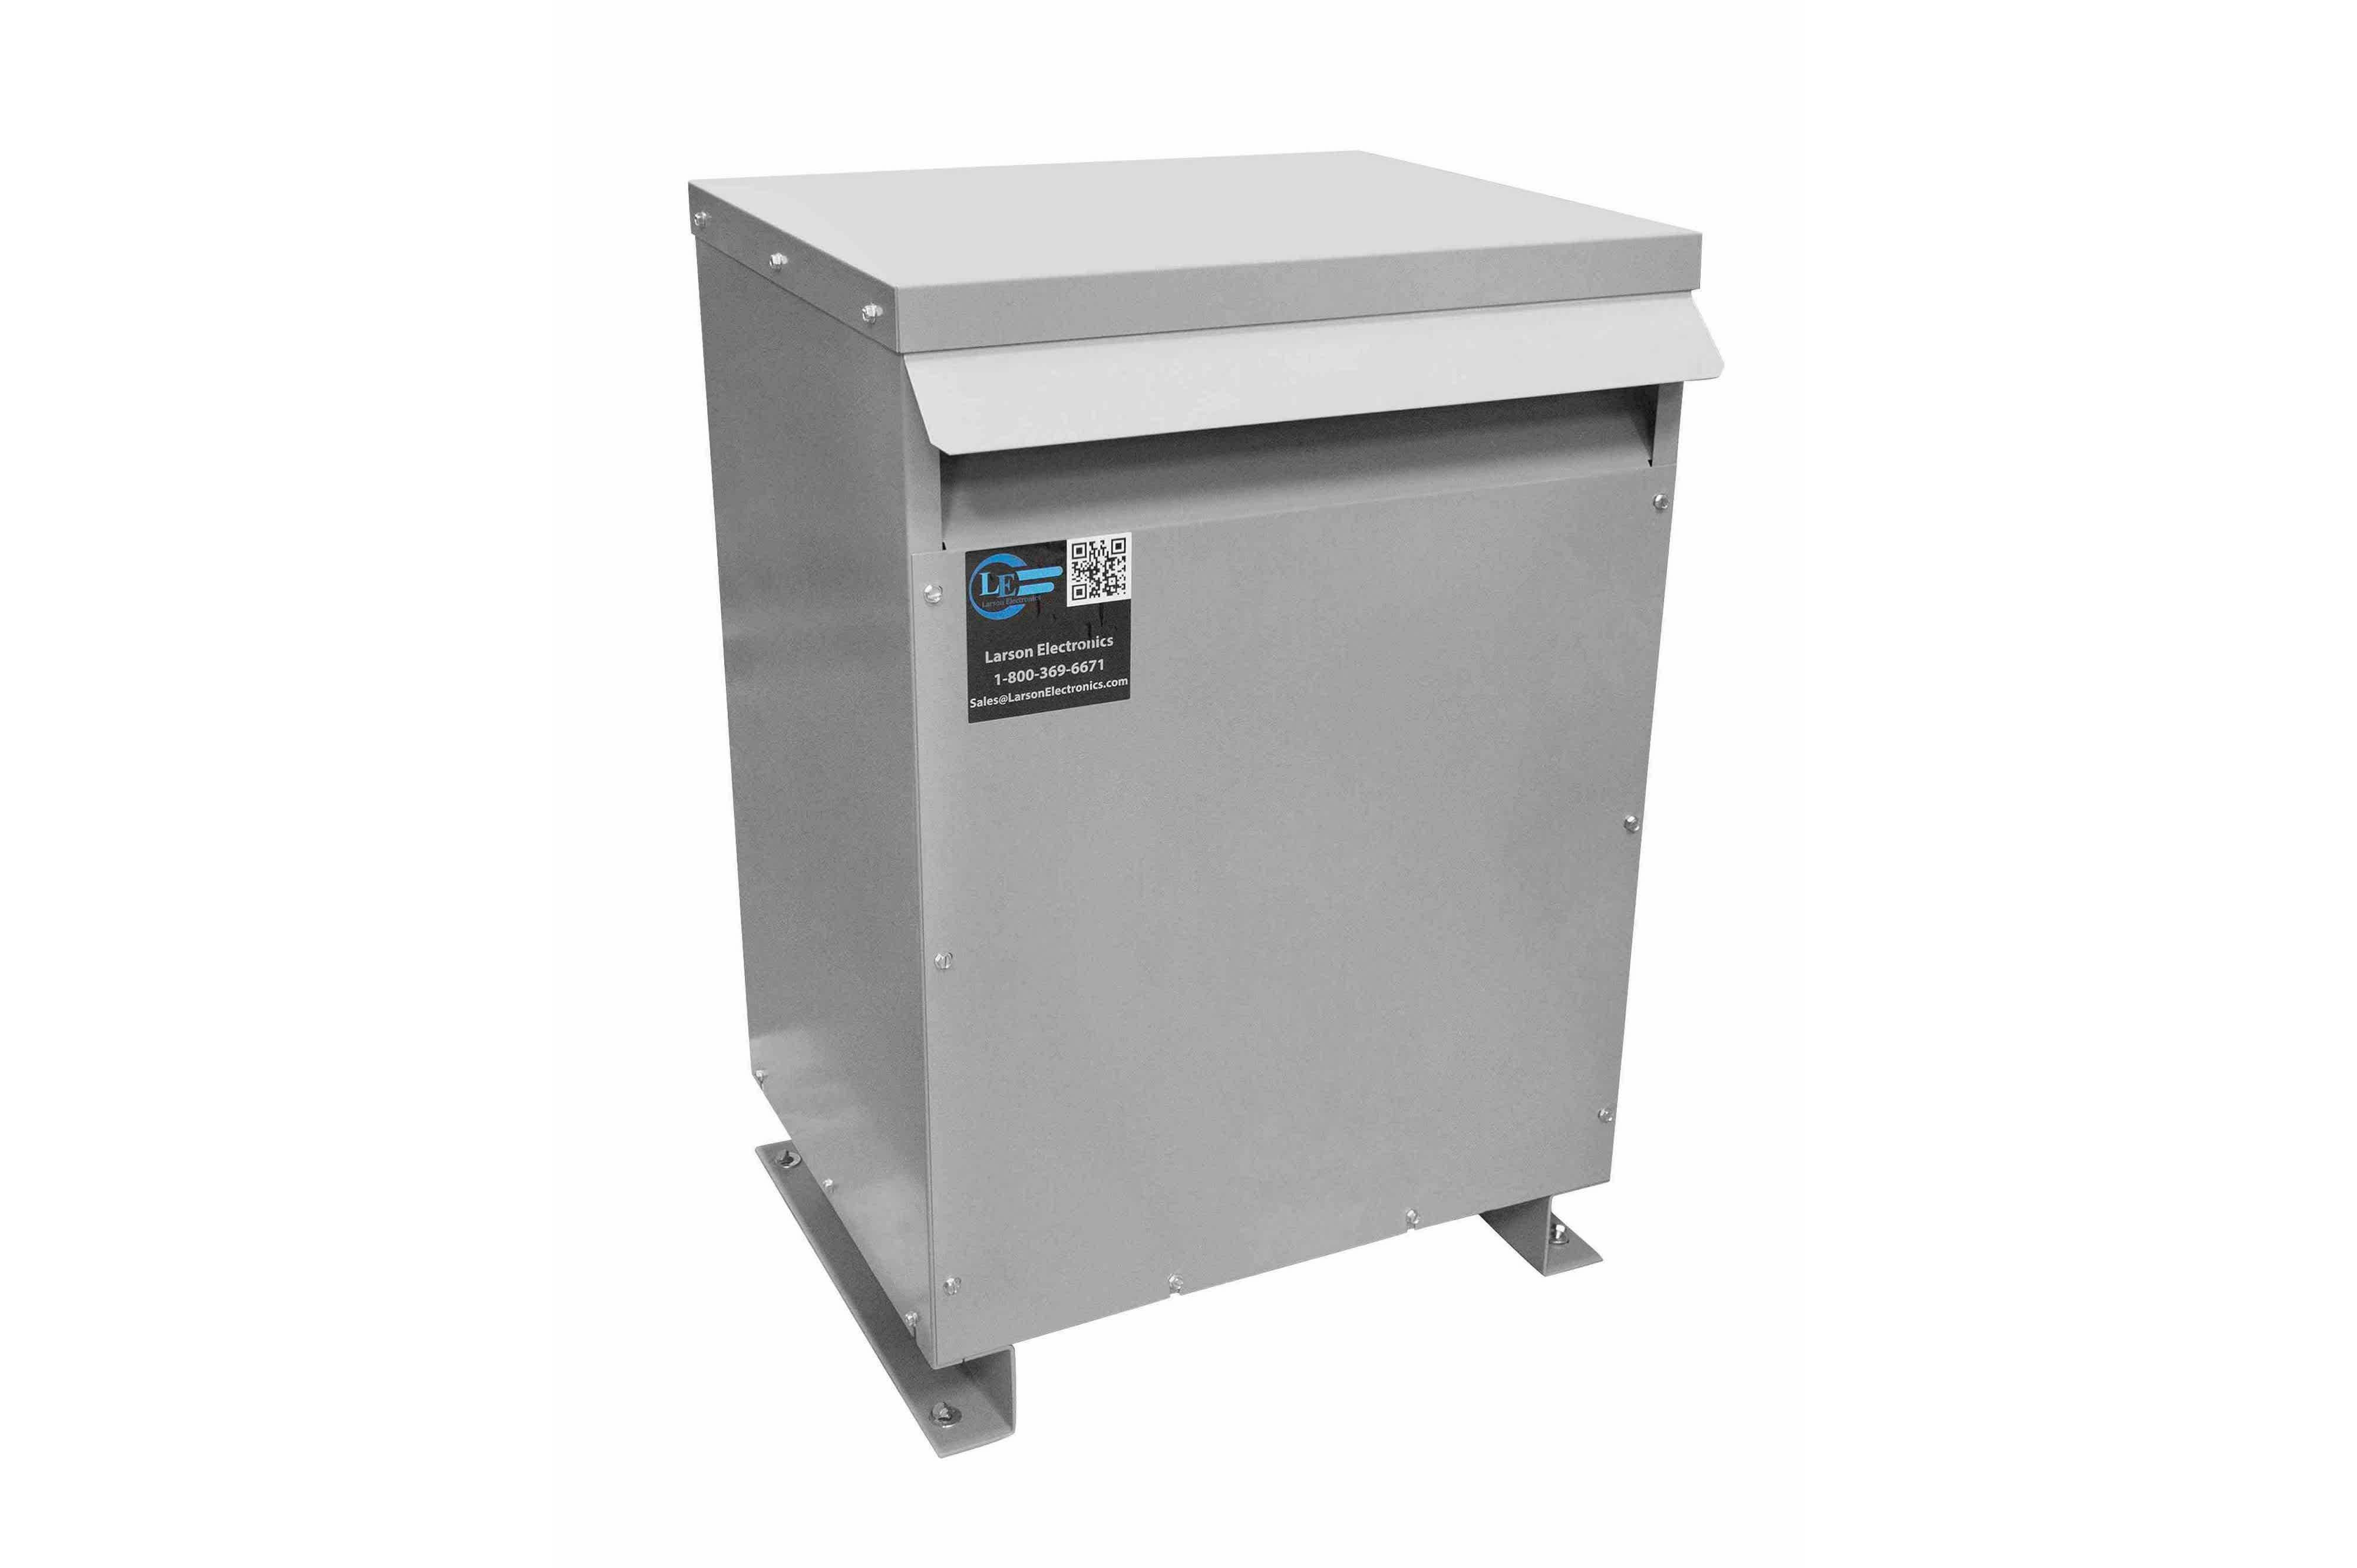 45 kVA 3PH Isolation Transformer, 480V Delta Primary, 240 Delta Secondary, N3R, Ventilated, 60 Hz